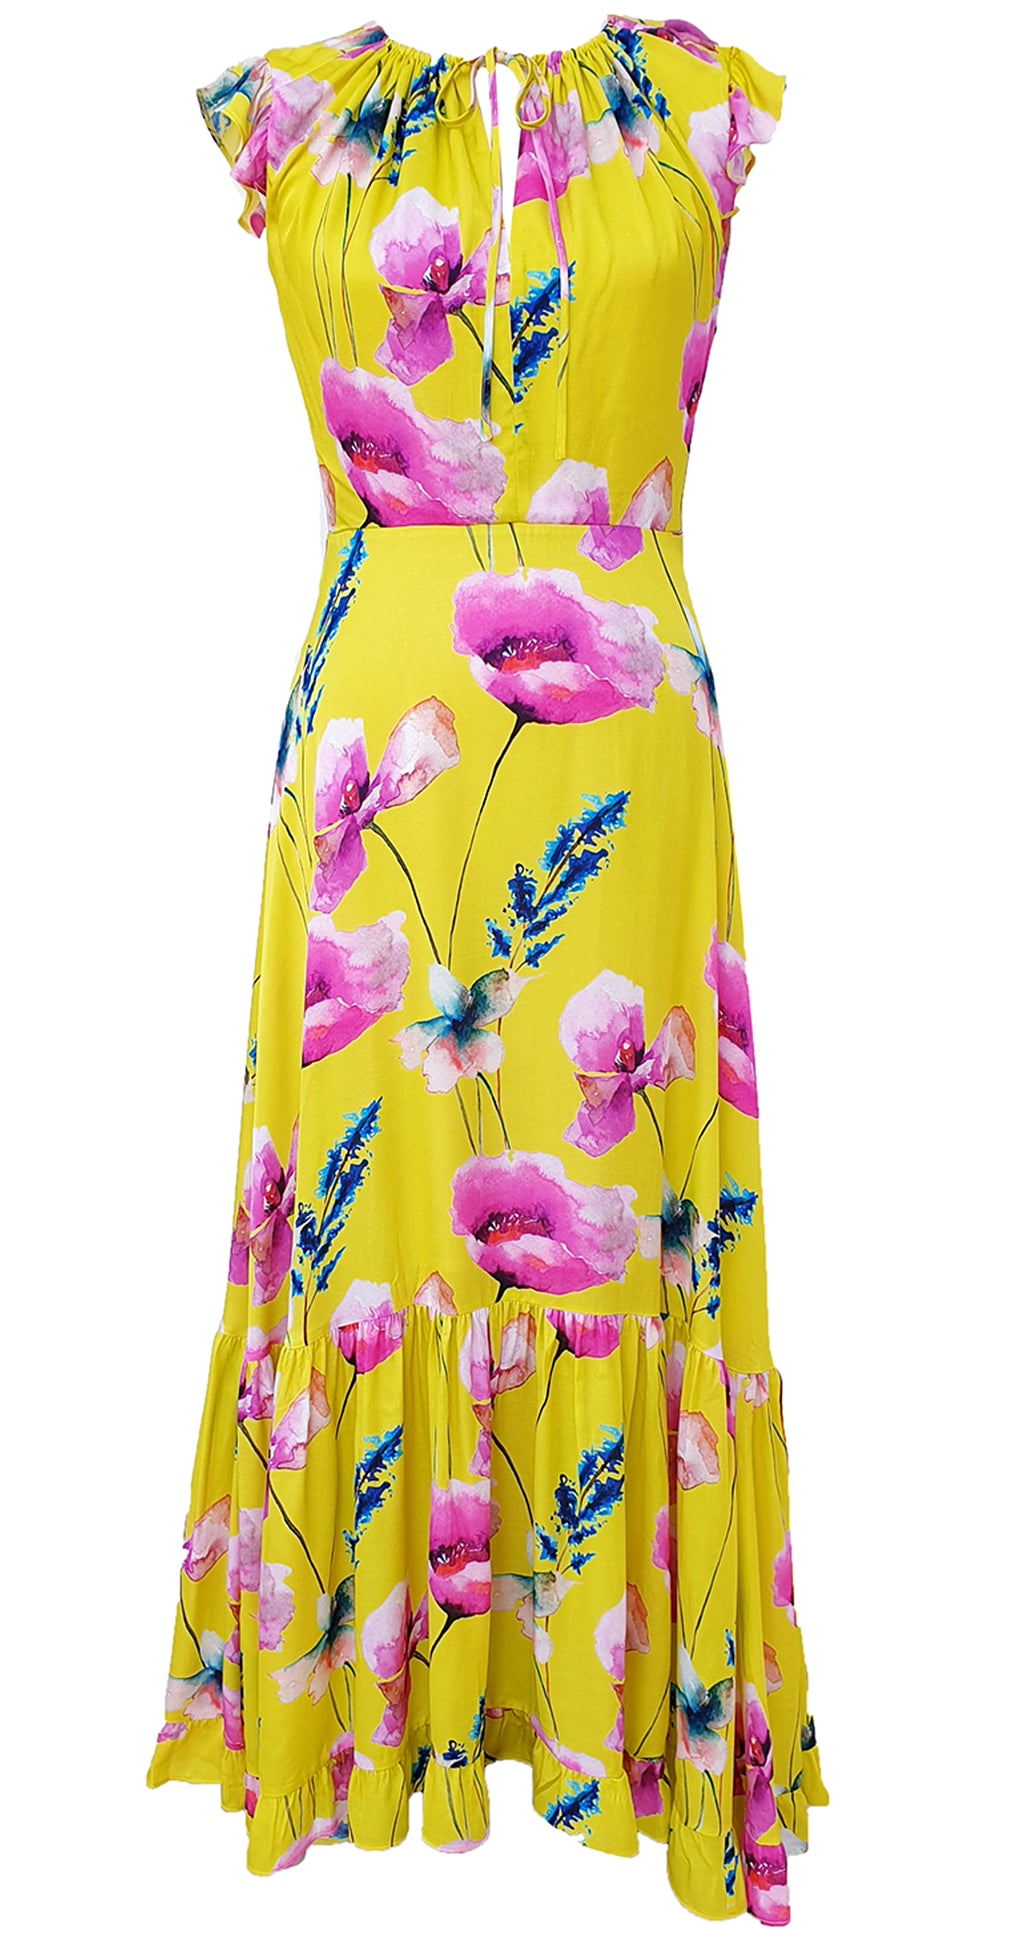 Serena Dress DRC363 Yellow Poppy Print